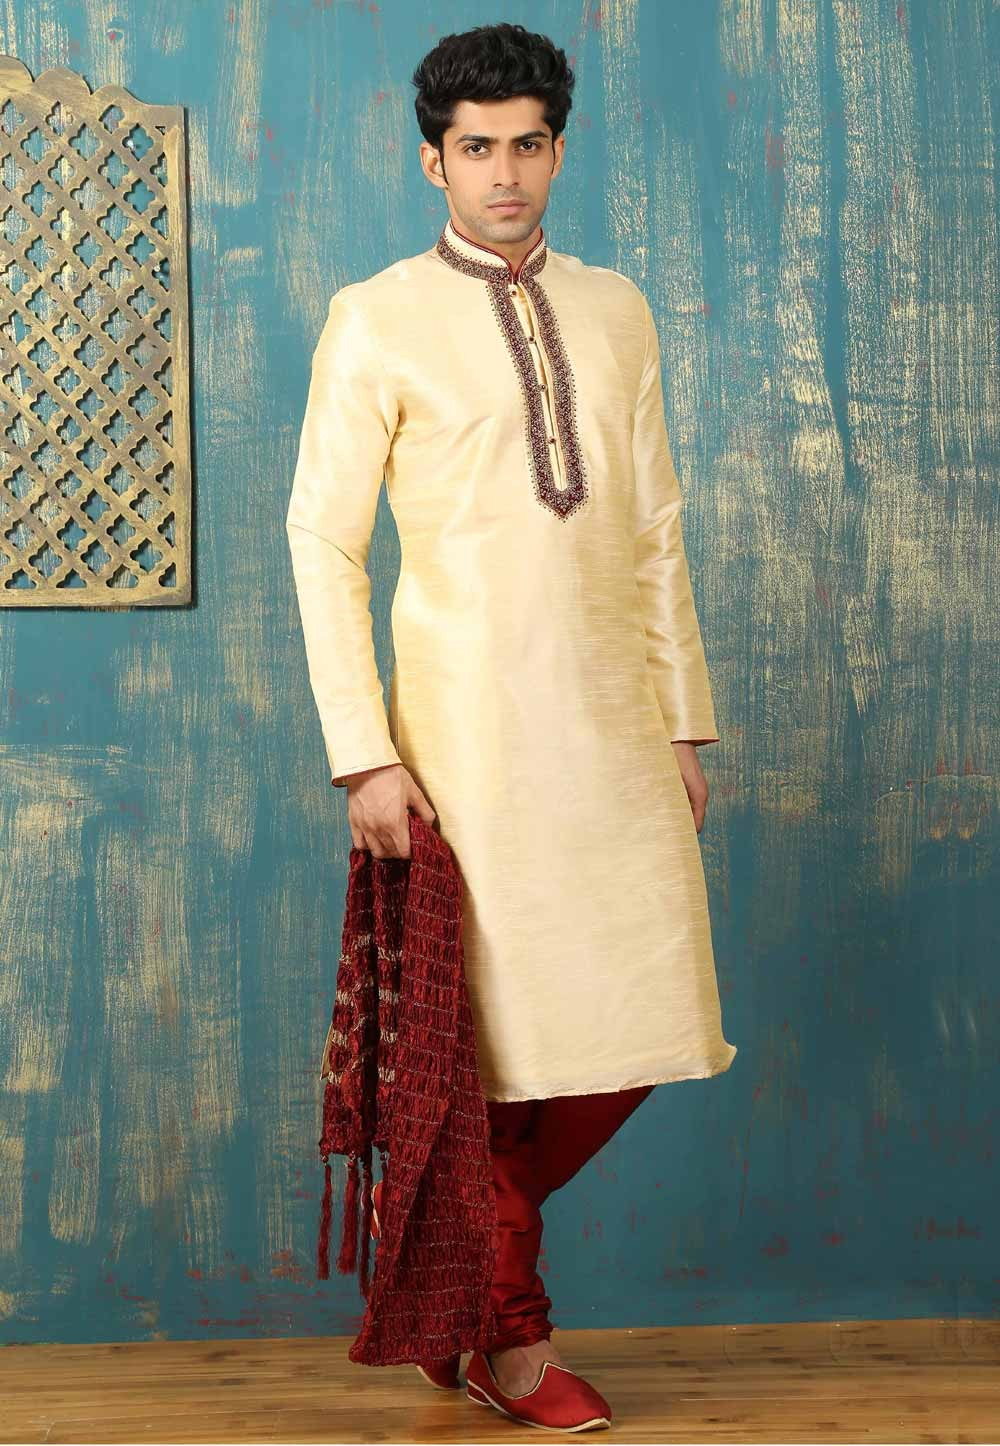 Exquisite Cream Color Dupion Art Silk Readymade Kurta Pajama.